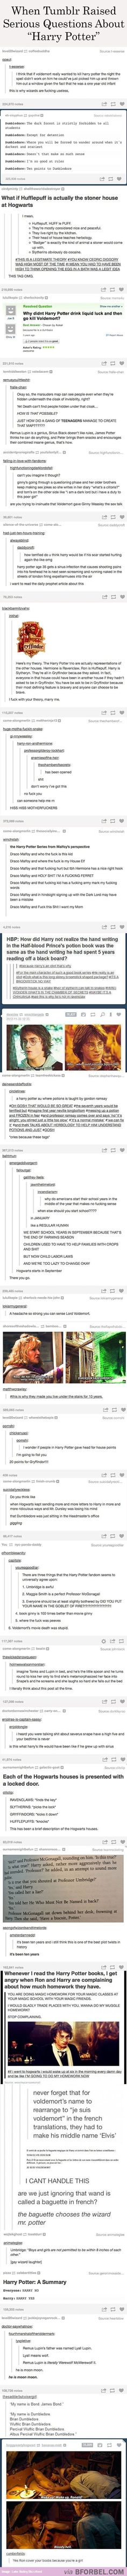 28 Seriously Amazing Harry Potter Questions Raised By Tumblr